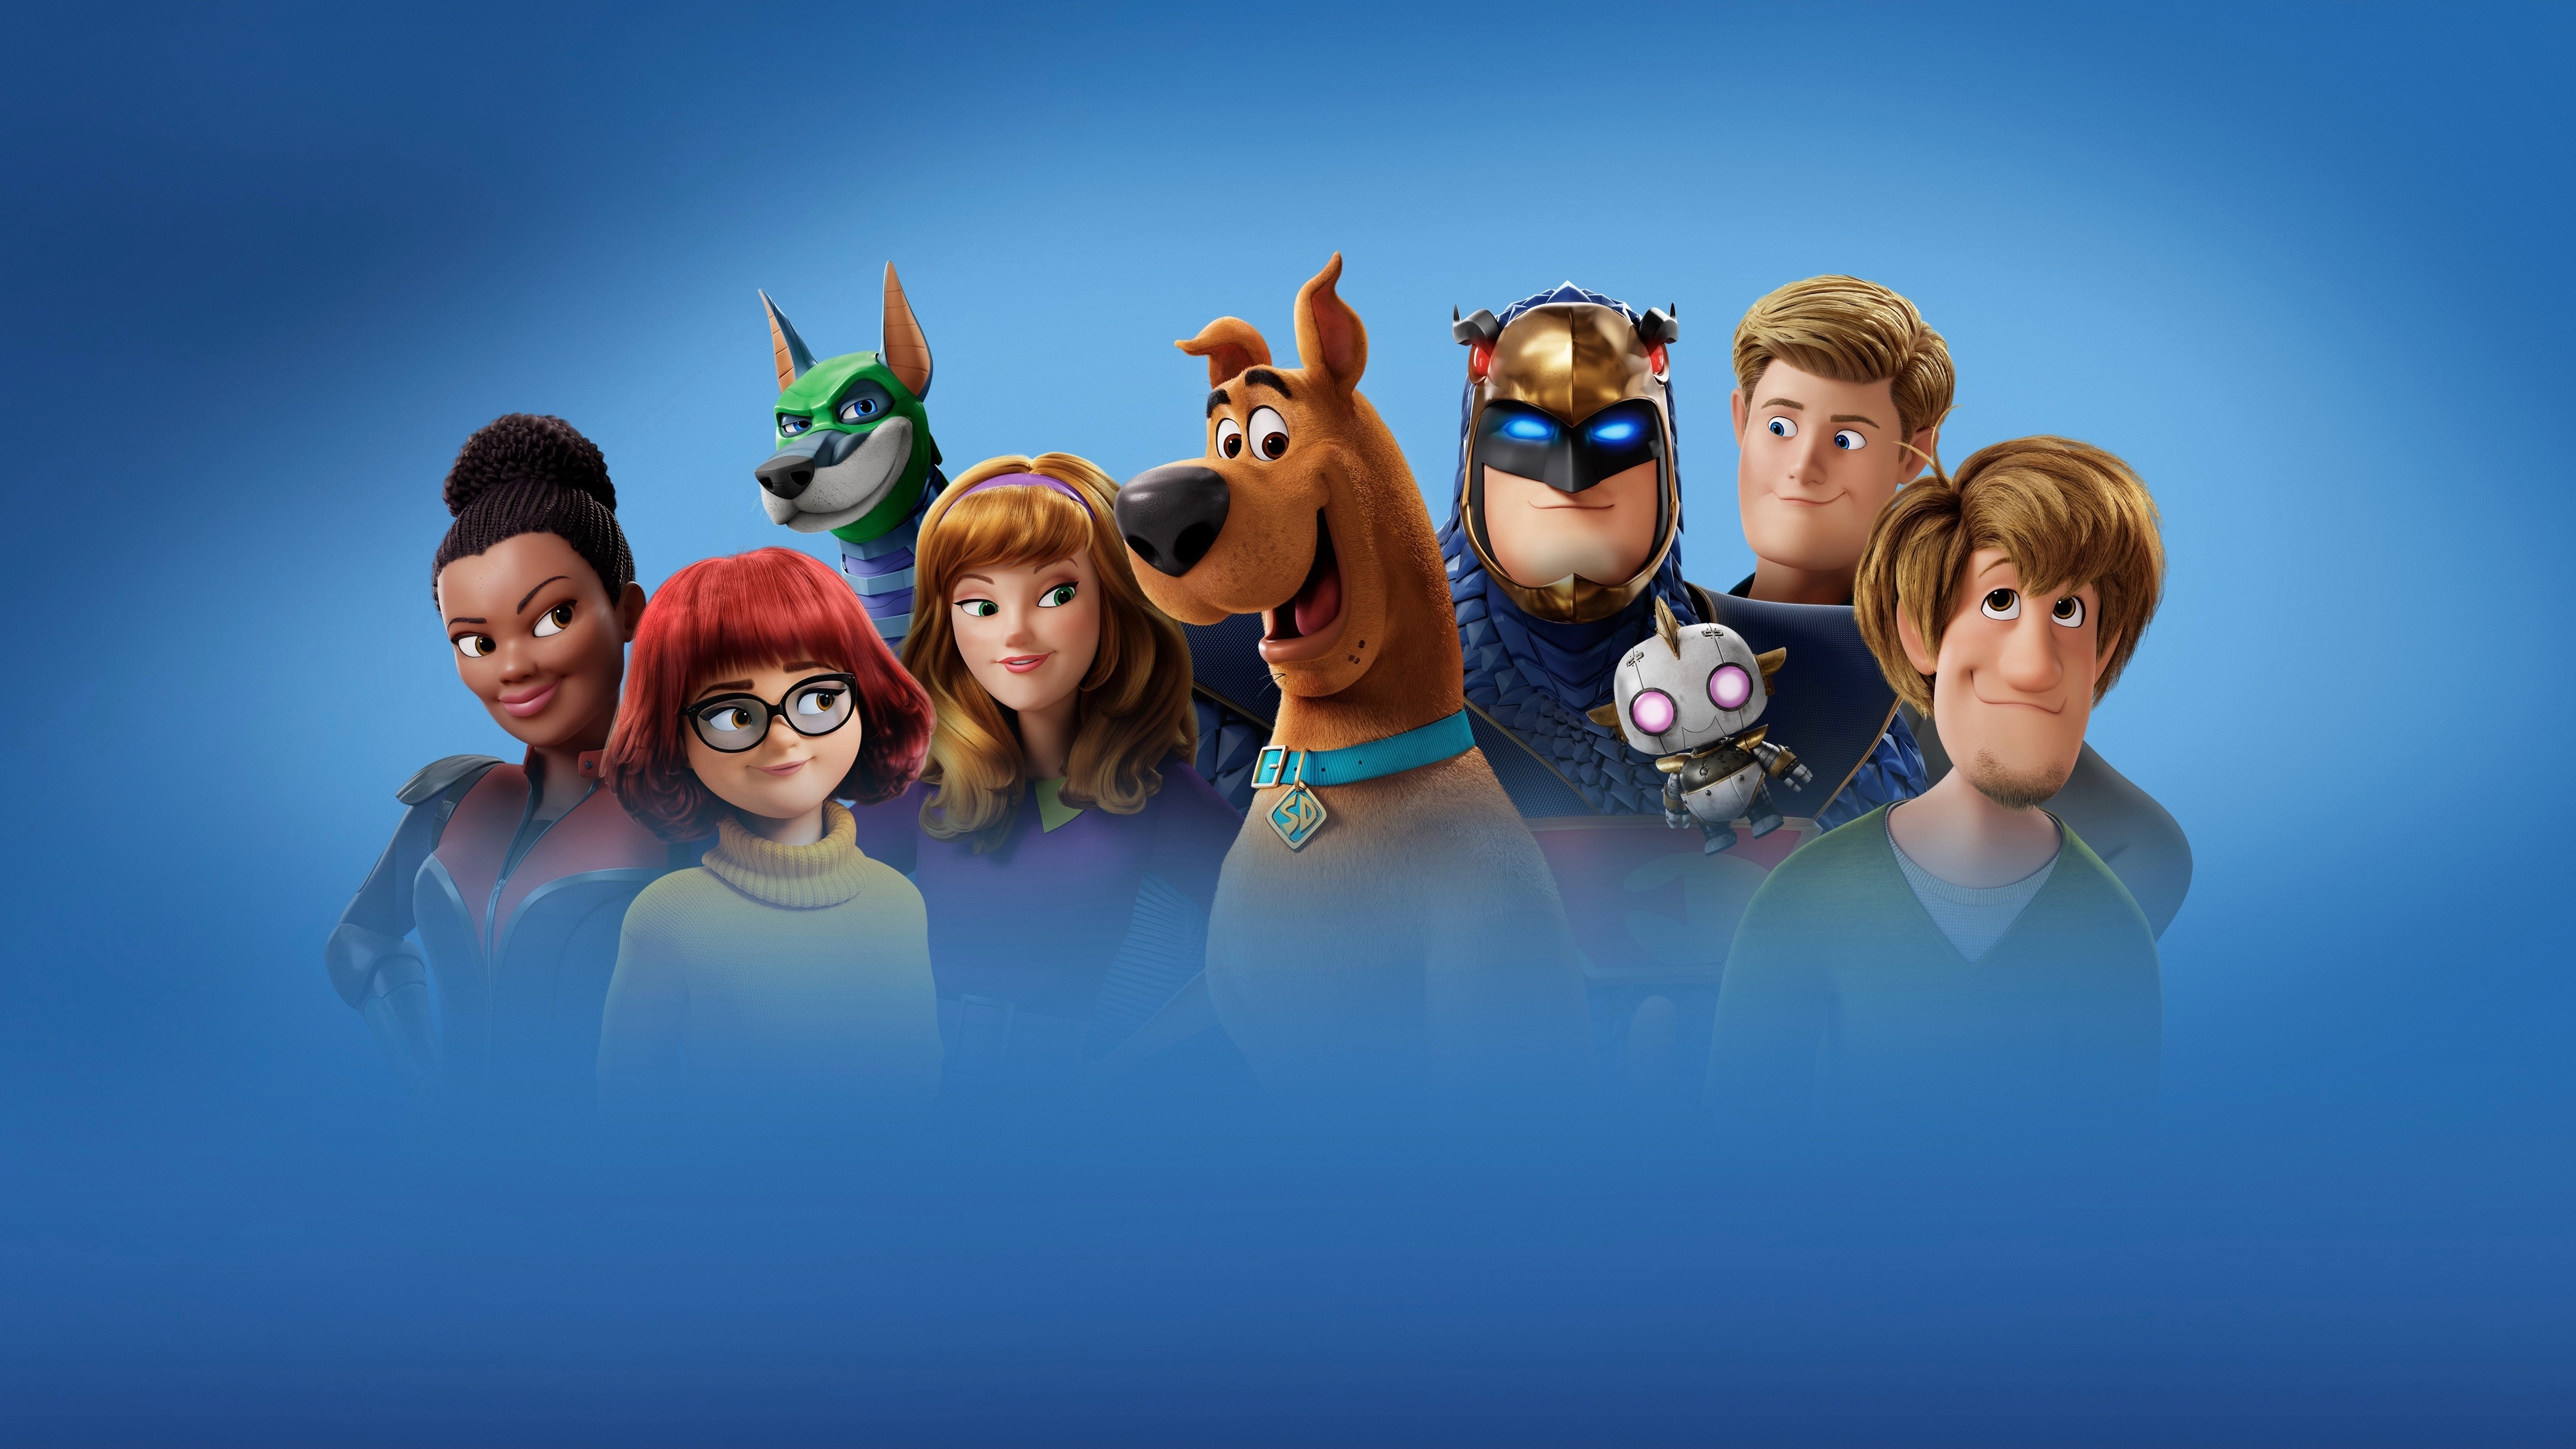 2560x1440 Scoob Movie Characters 1440p Resolution Wallpaper Hd Movies 4k Wallpapers Images Photos And Background